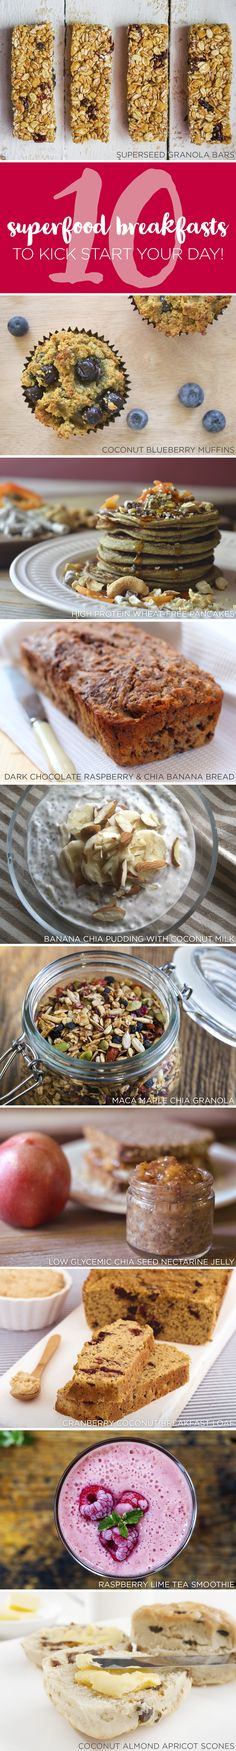 10 Superfood Breakfasts to Kick Start your Day kitchen.nutiva.com